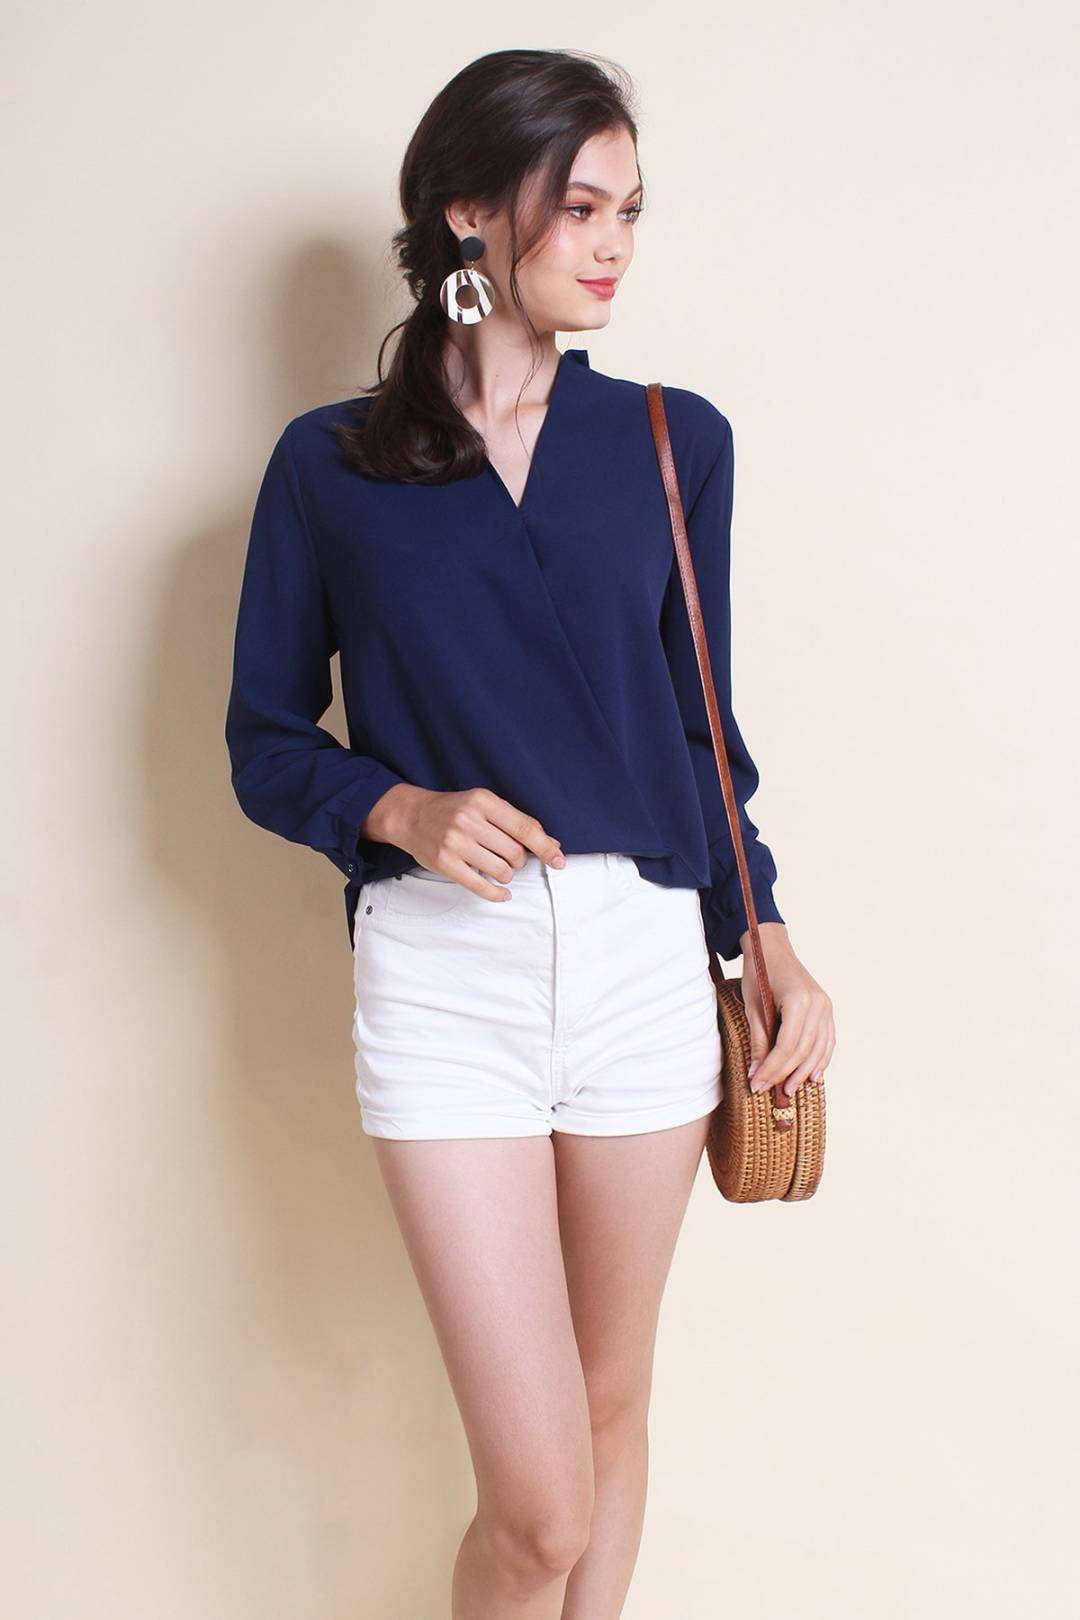 MADEBYNM MEREDINE HI-LO CLASSY BLOUSE IN NAVY BLUE [XS/S/M/L]